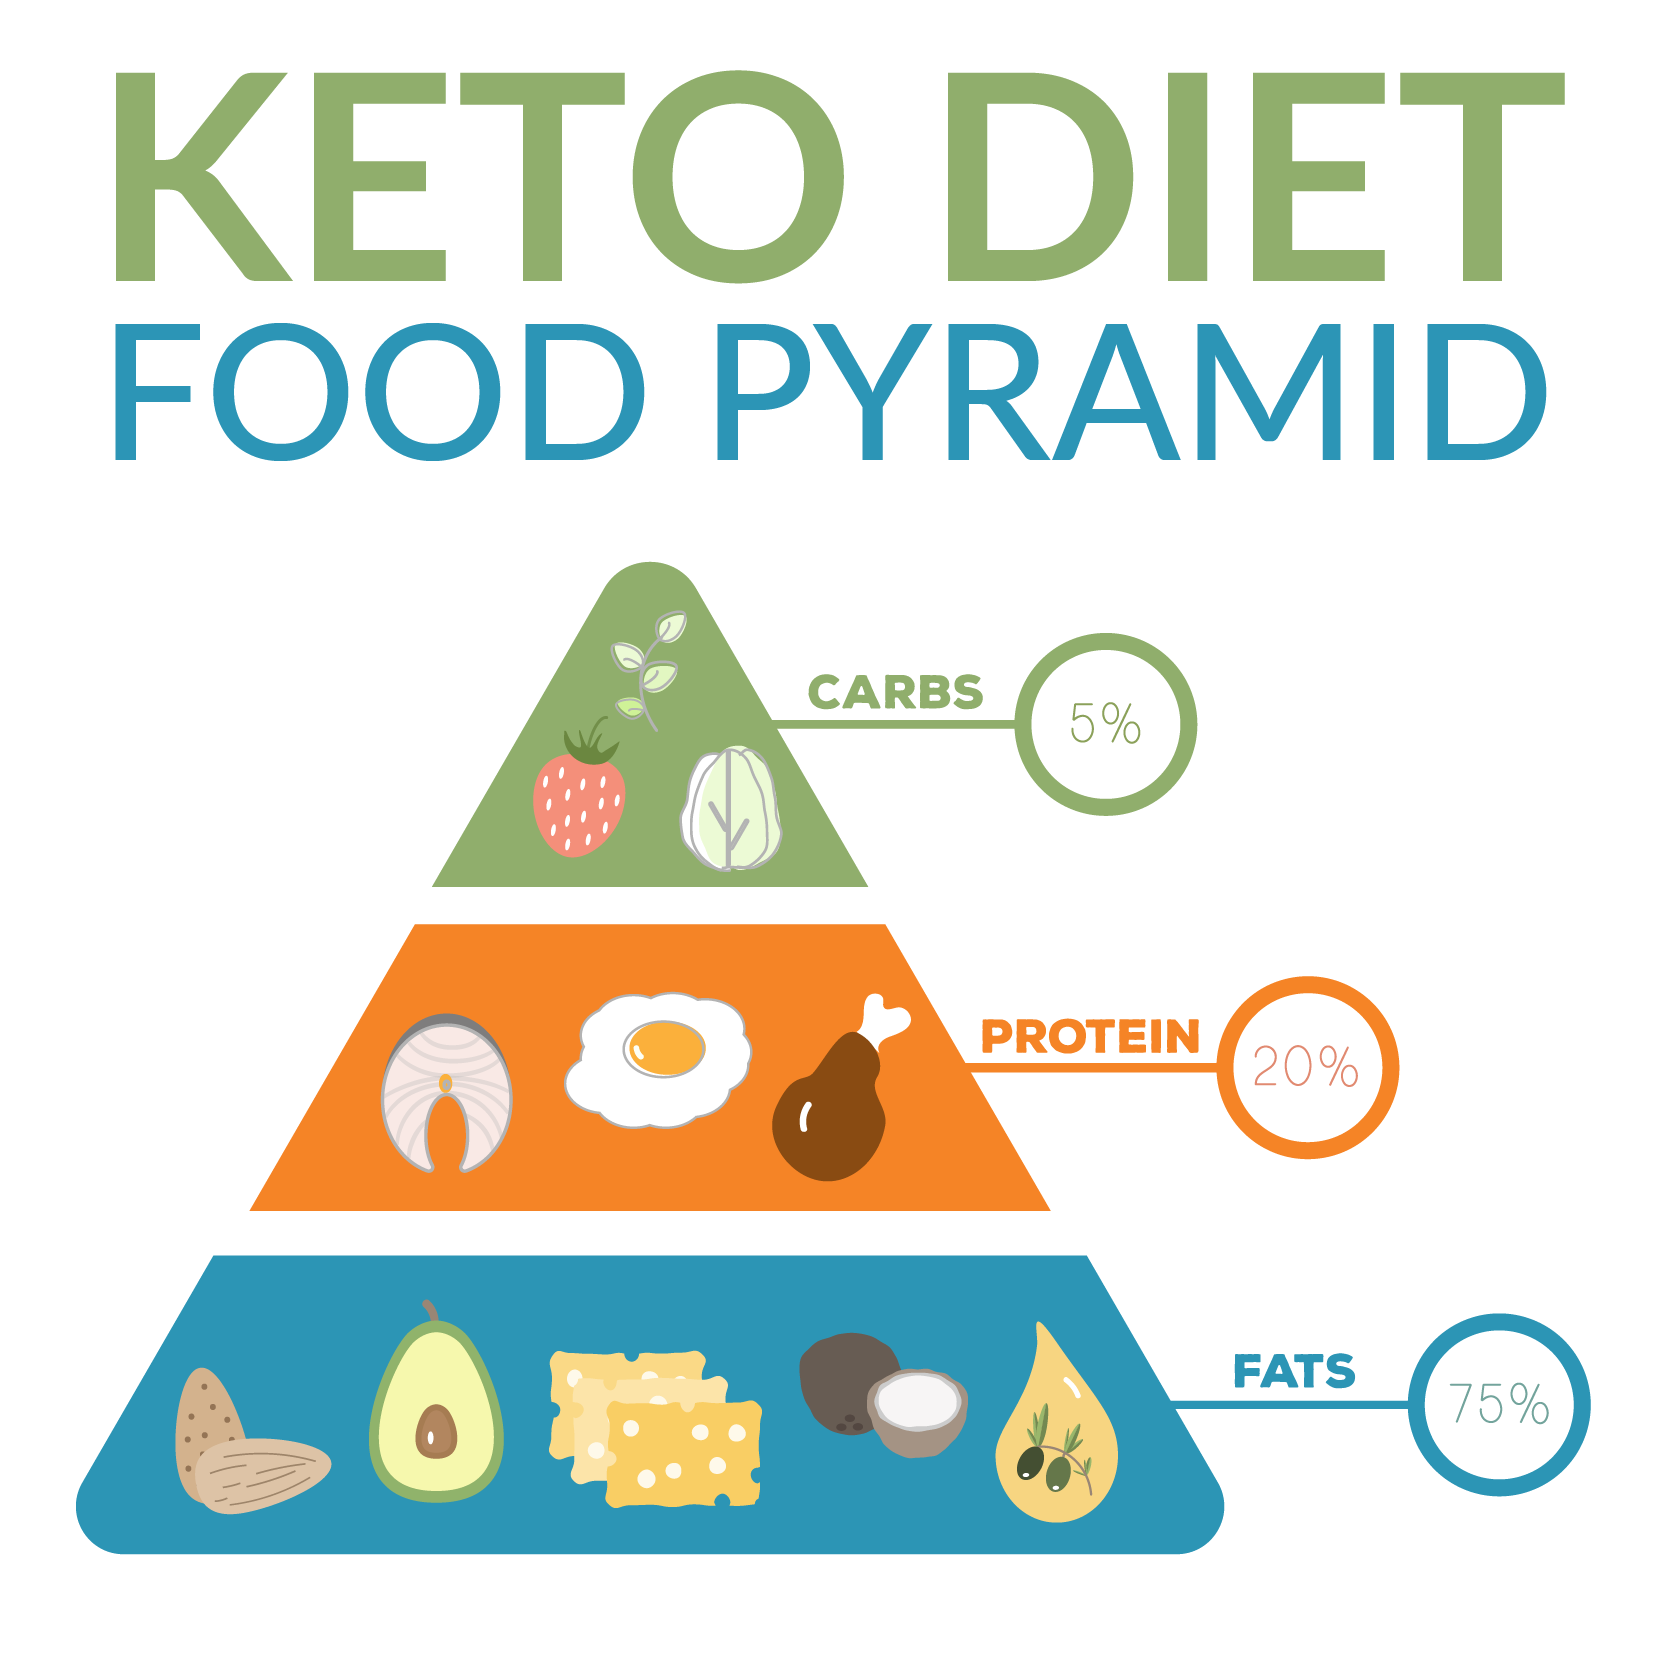 when was the keto diet developed